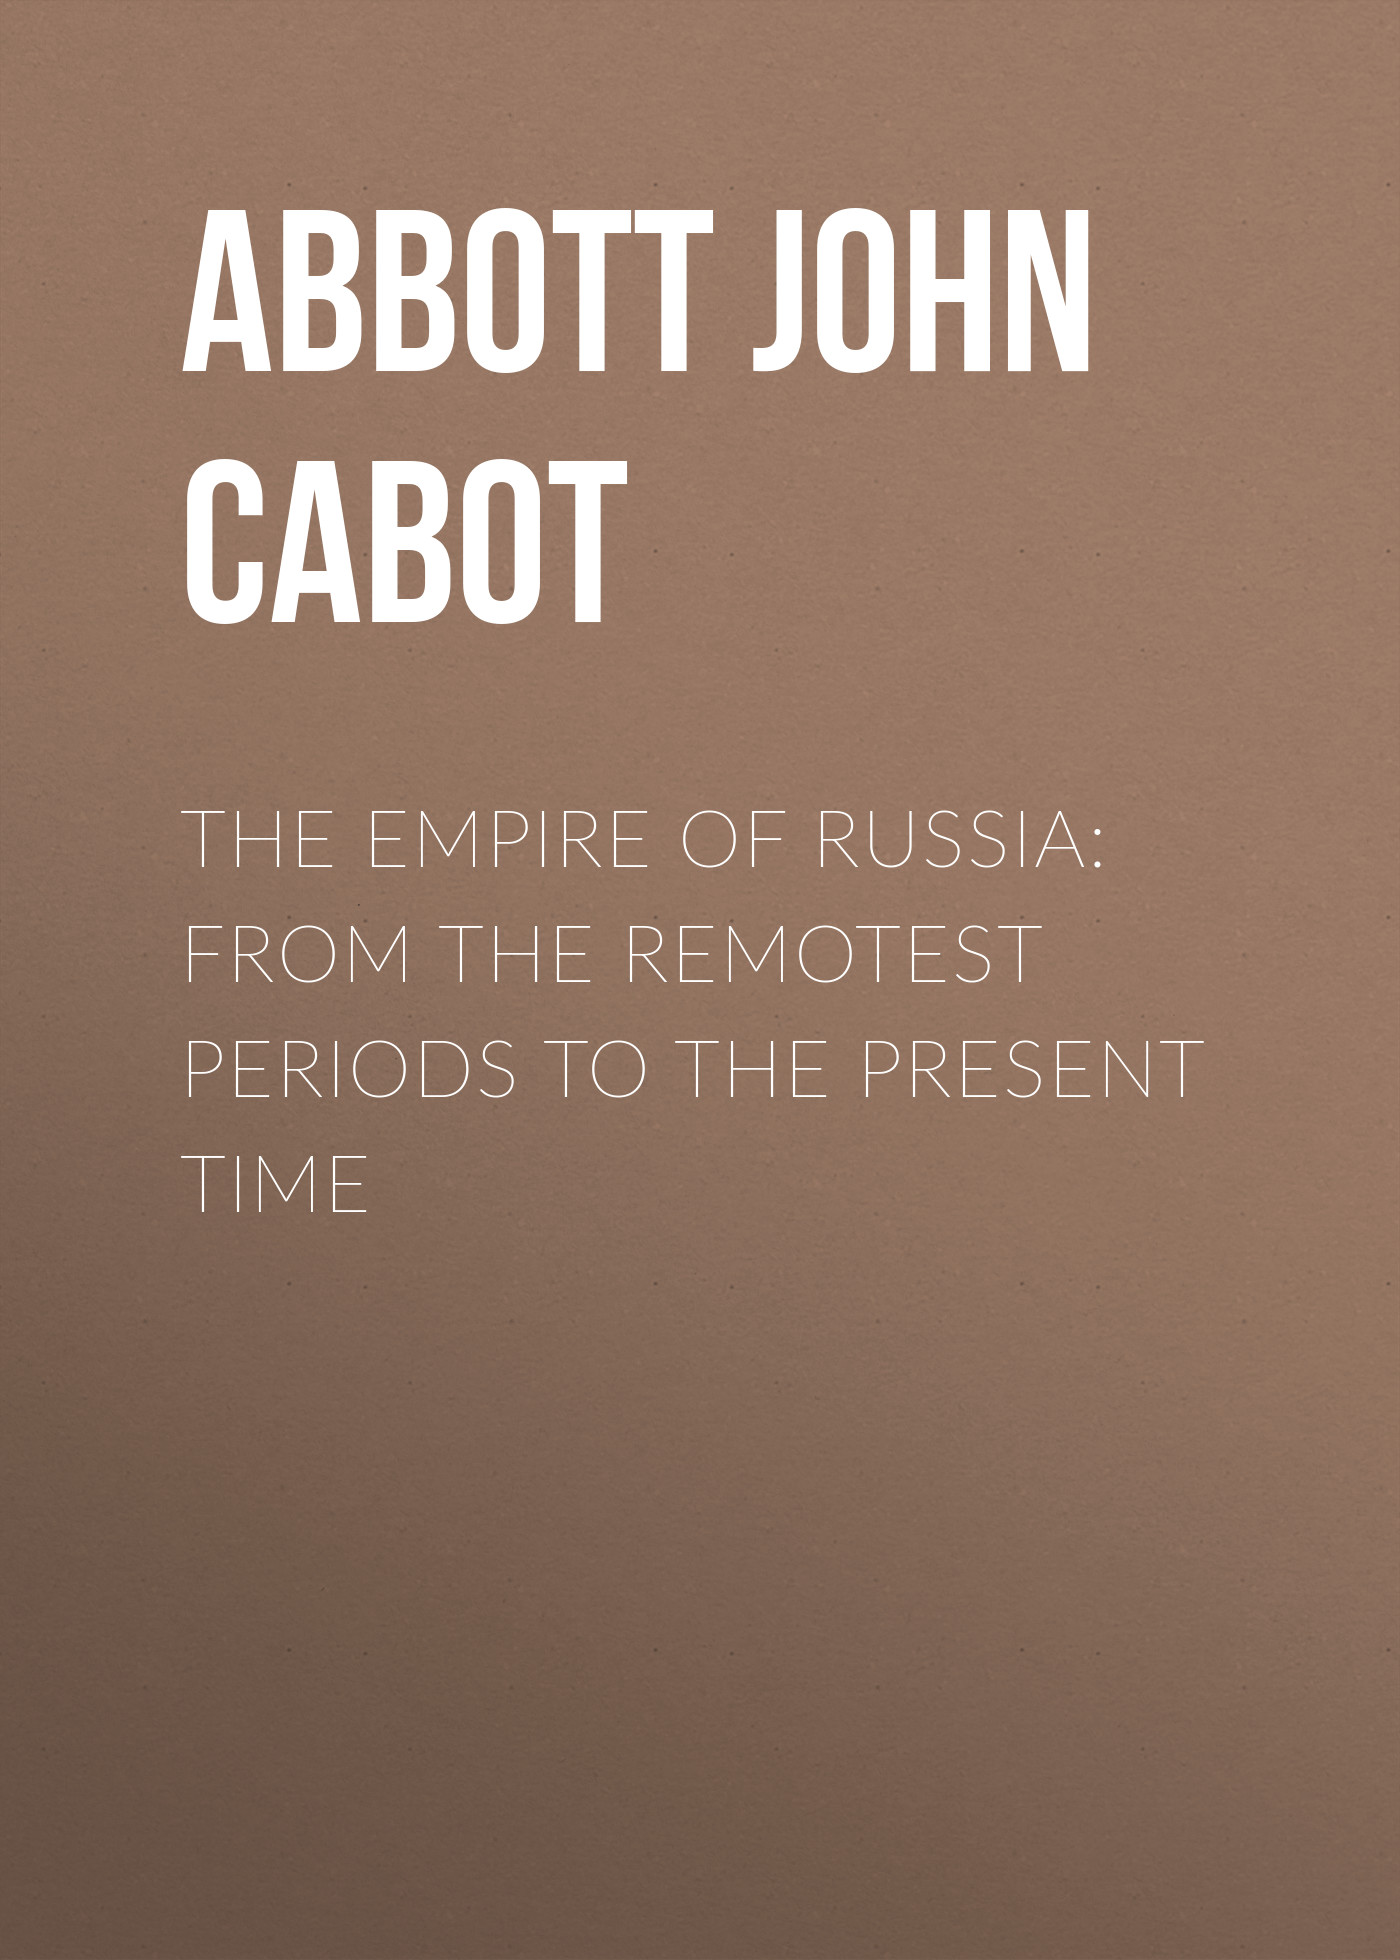 лучшая цена Abbott John Stevens Cabot The Empire of Russia: From the Remotest Periods to the Present Time